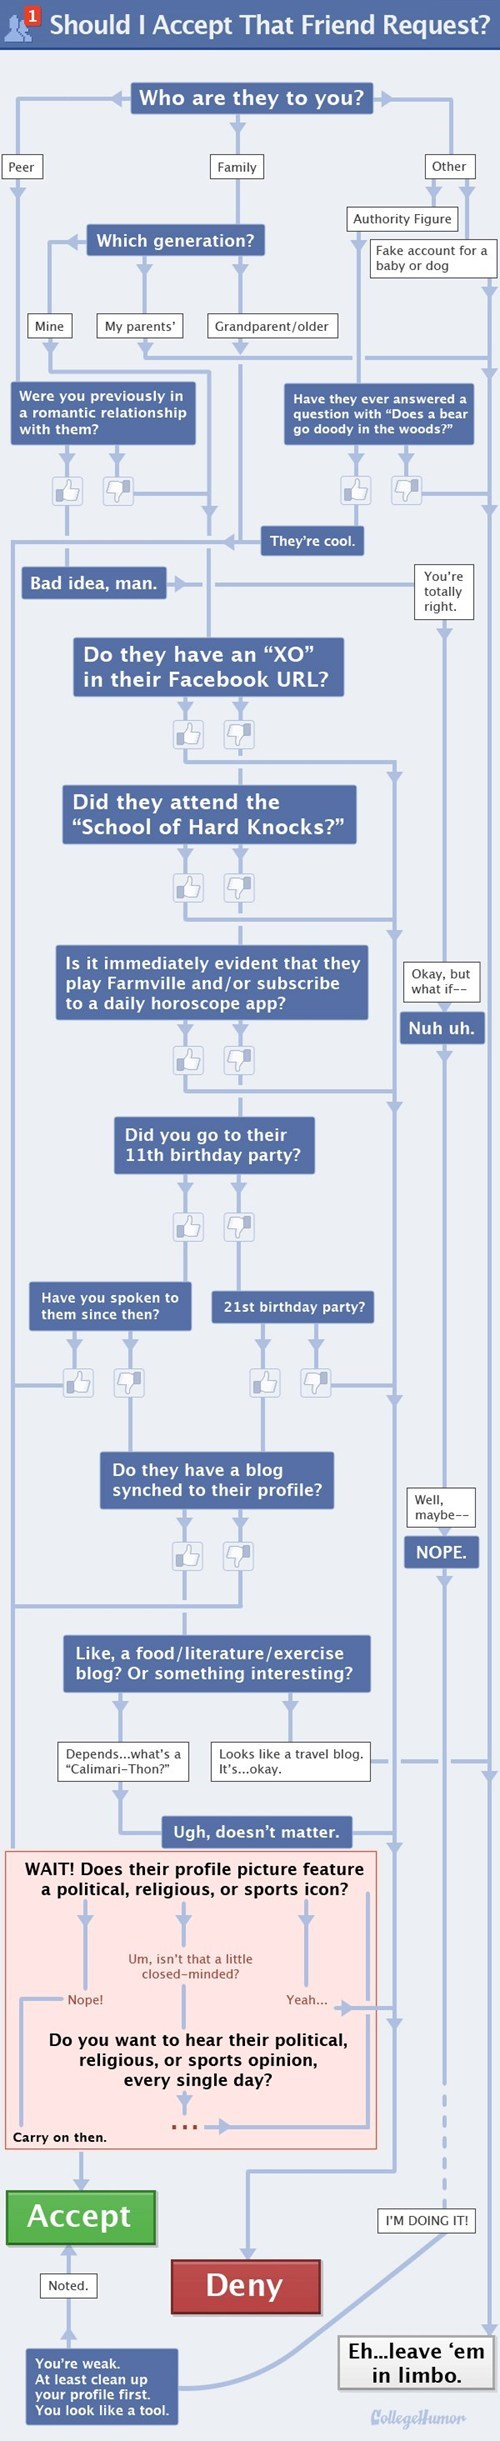 blog college humor flowchart friend request friends - 6123911680